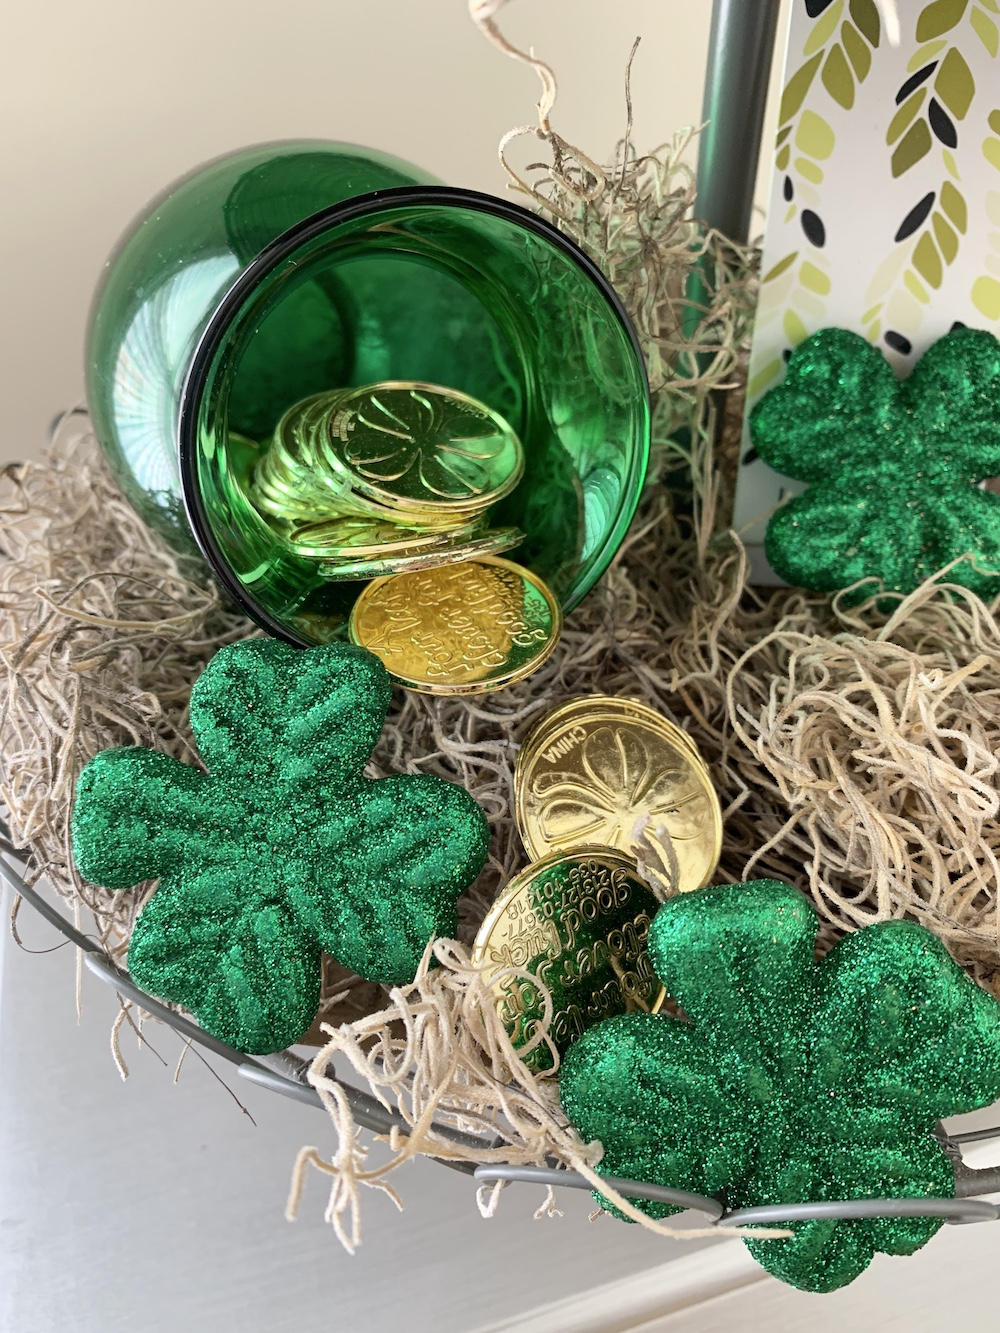 St. Patrick's Day Farmhouse Decor Spilled Gold Coins #Farmhouse #DIY #Affordable #SimpleDecor #QuickAndEasy #BudgetFriendly #StPatrick #StPatricksDay #StPatricksDecor #FarmhouseDecor